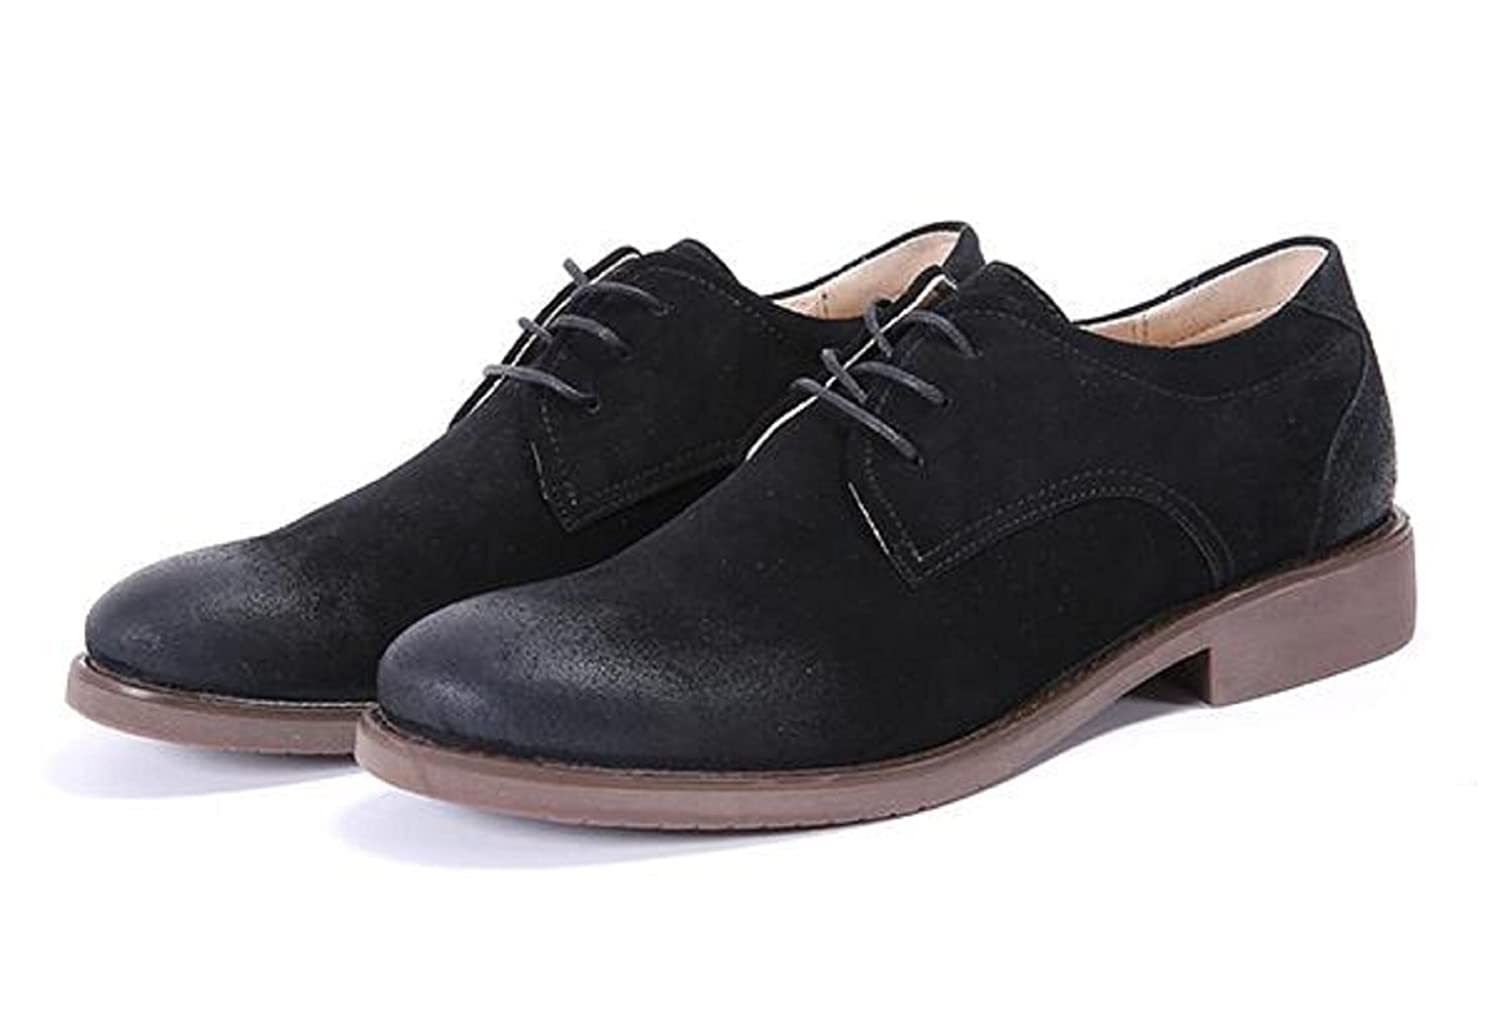 Fengxinzi 4 Color US Size 6-13 Suede Leather Mens Dress Formal Oxfords Ankle Boots Shoes